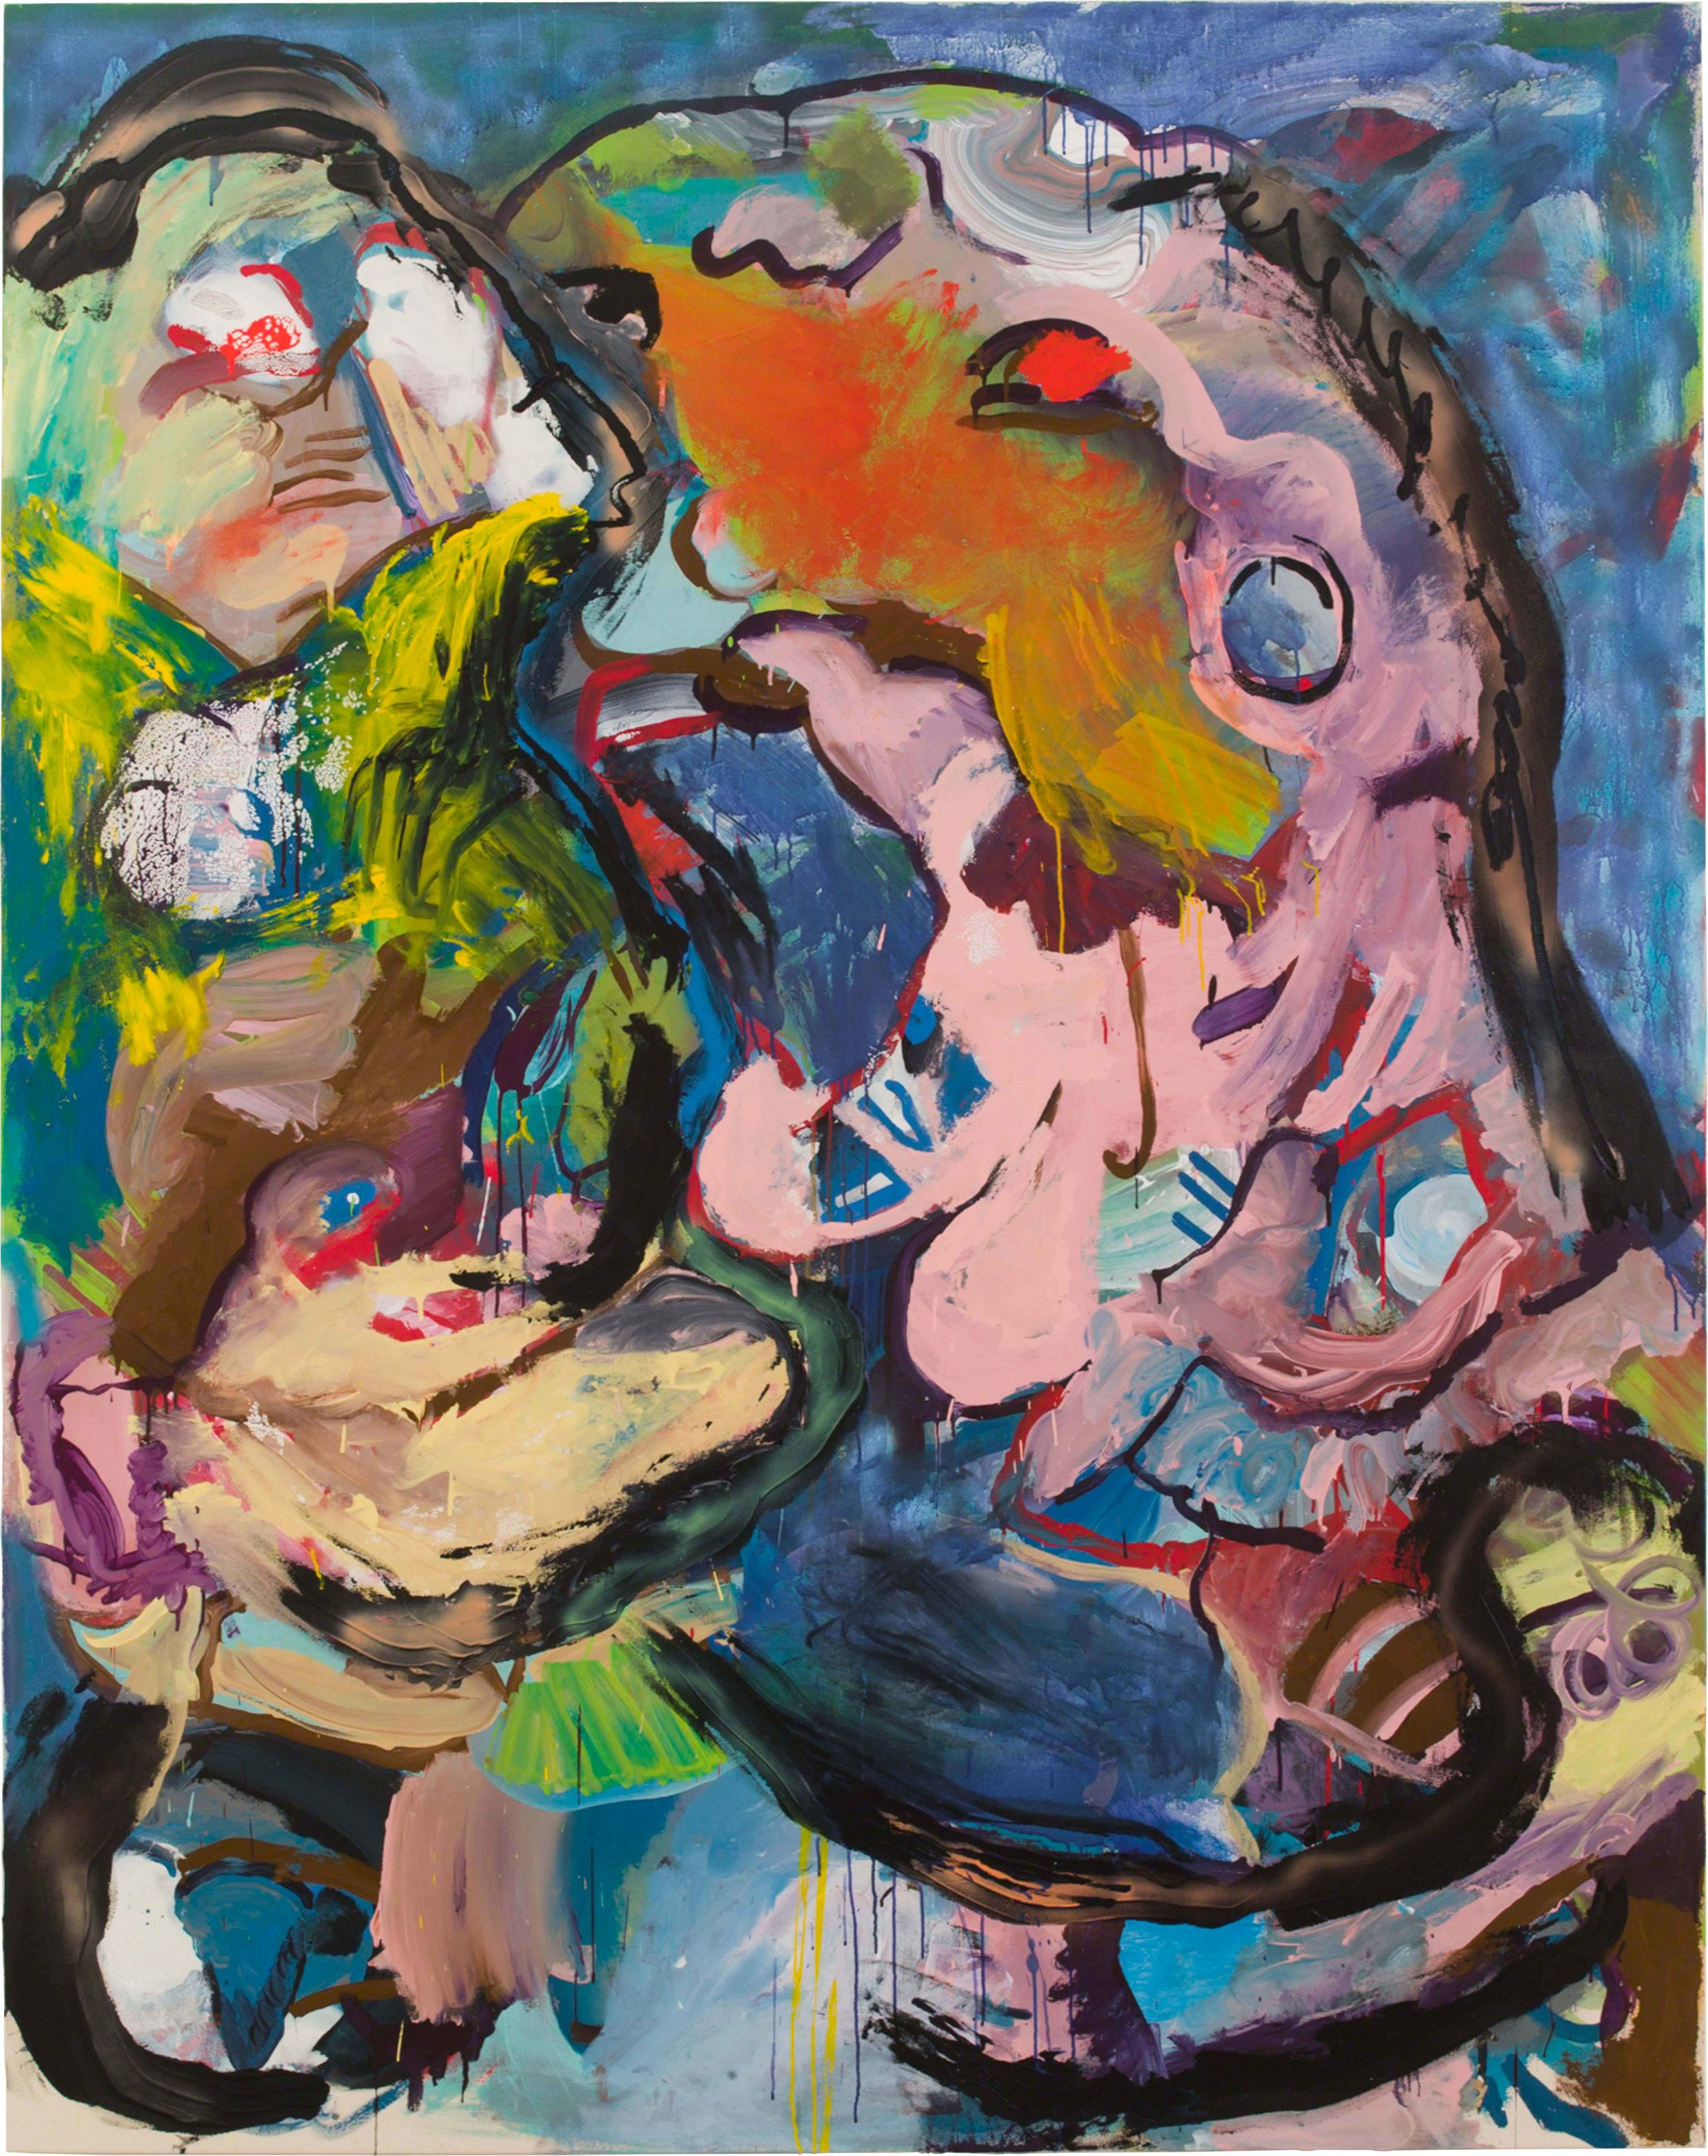 Drew Beattie and Ben Shepard  Night Battles  2015 acrylic and spray paint on canvas 96 x 76 inches